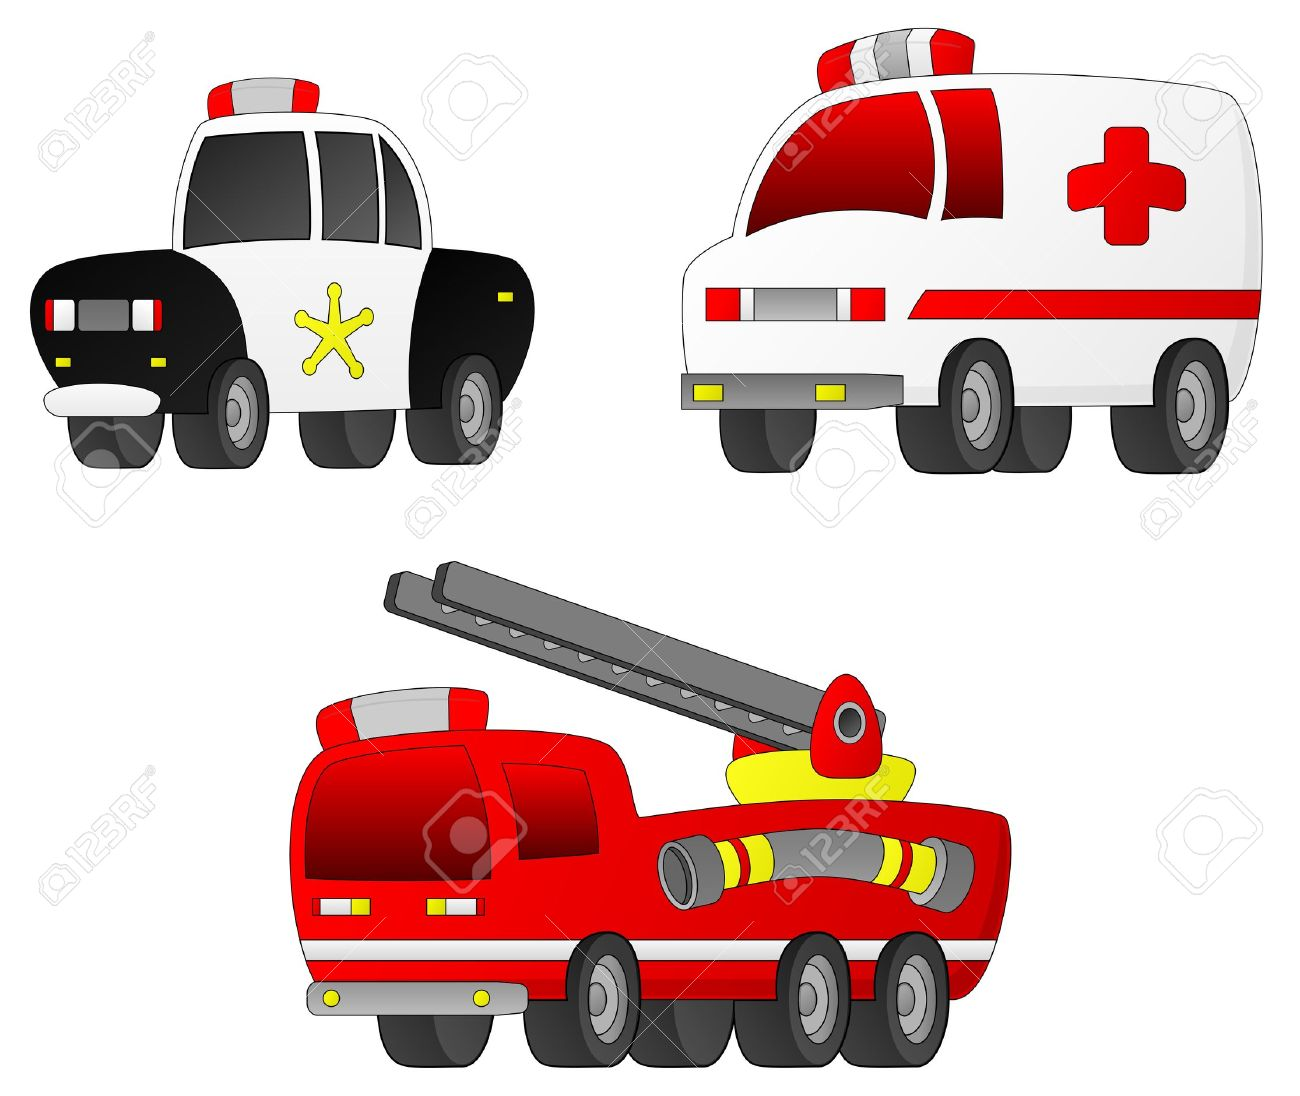 Rescue vehicles clipart 20 free Cliparts | Download images ...